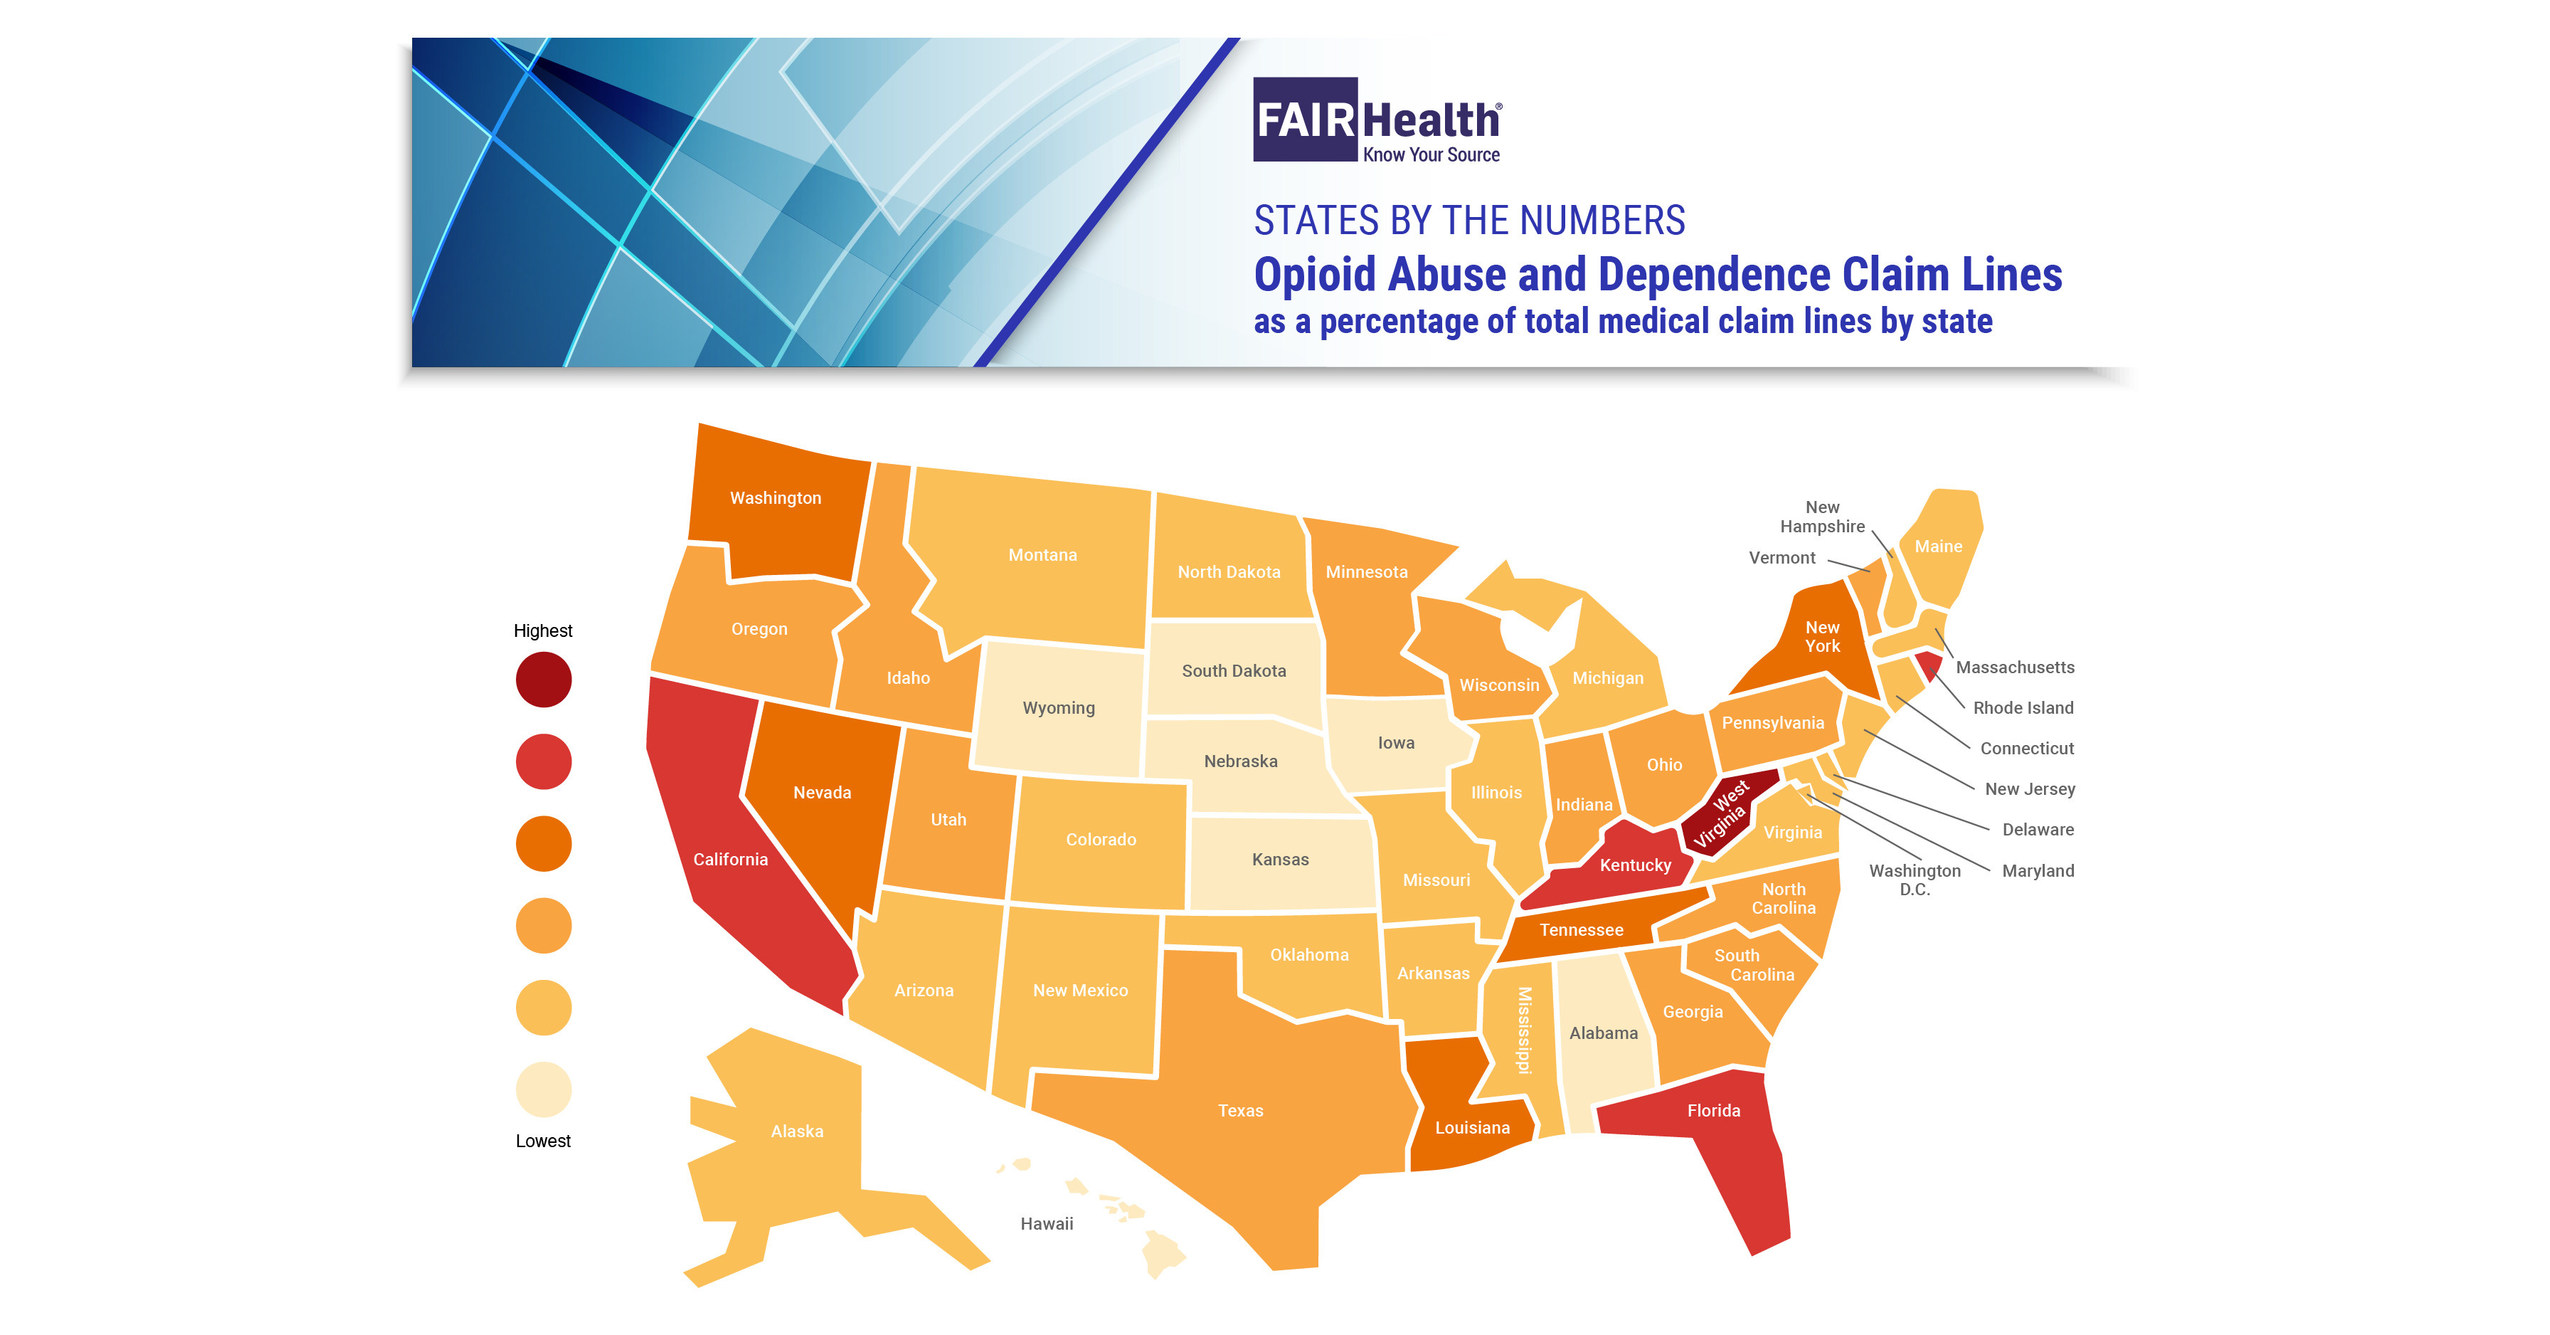 Wide Variation across the Nation in Treatment for Opioid Abuse and Dependence